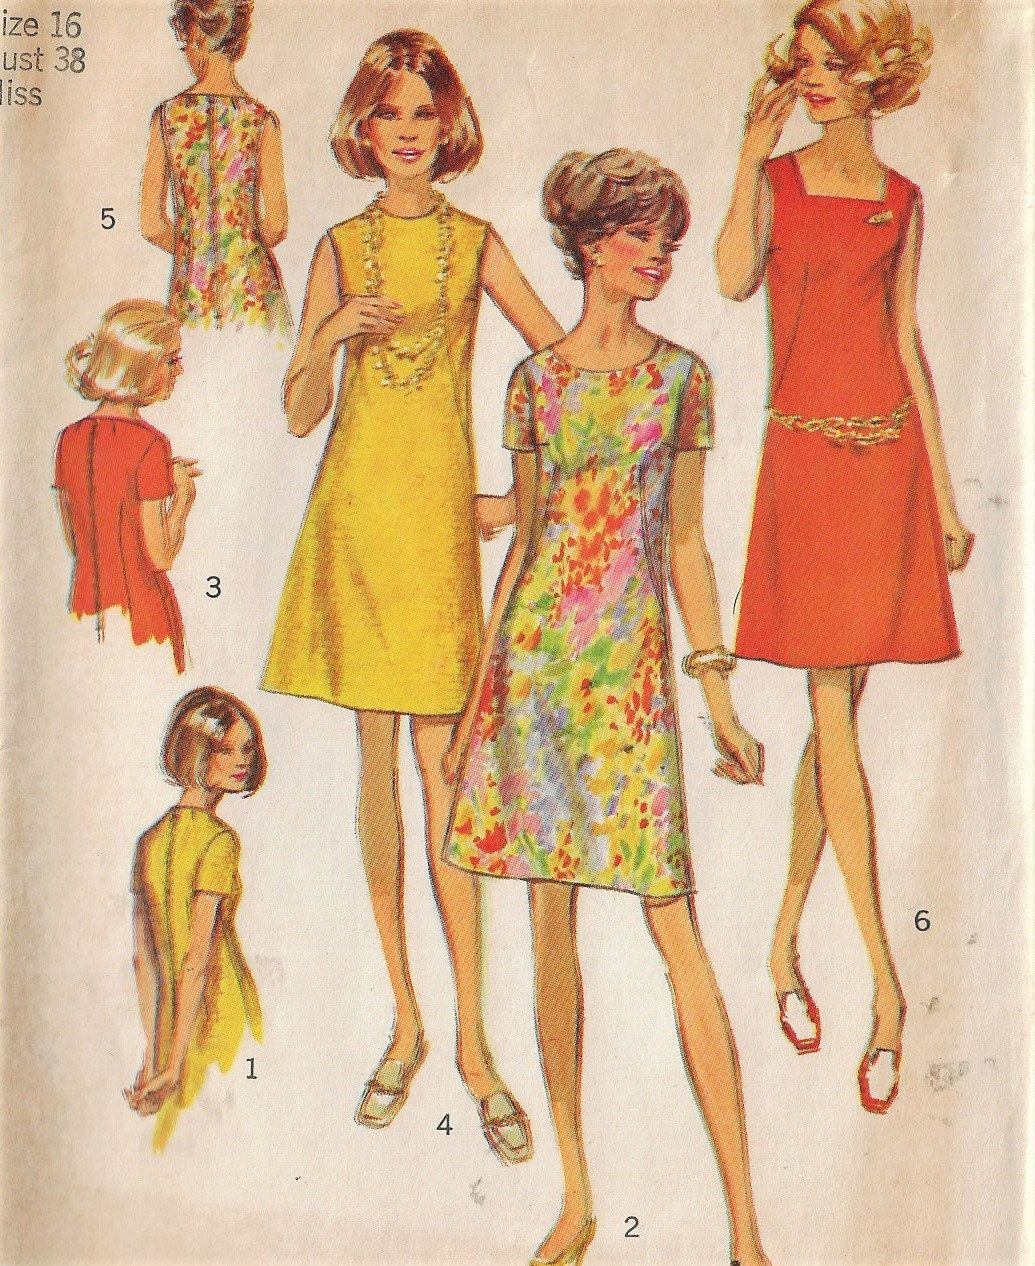 1970s Simplicity Sewing Pattern 8882 Womens A Line Dress With 3 Necklines Jewel Round Square Size 16 Bust 38 Simplicity Sewing Patterns Sewing Patterns A Line Dress